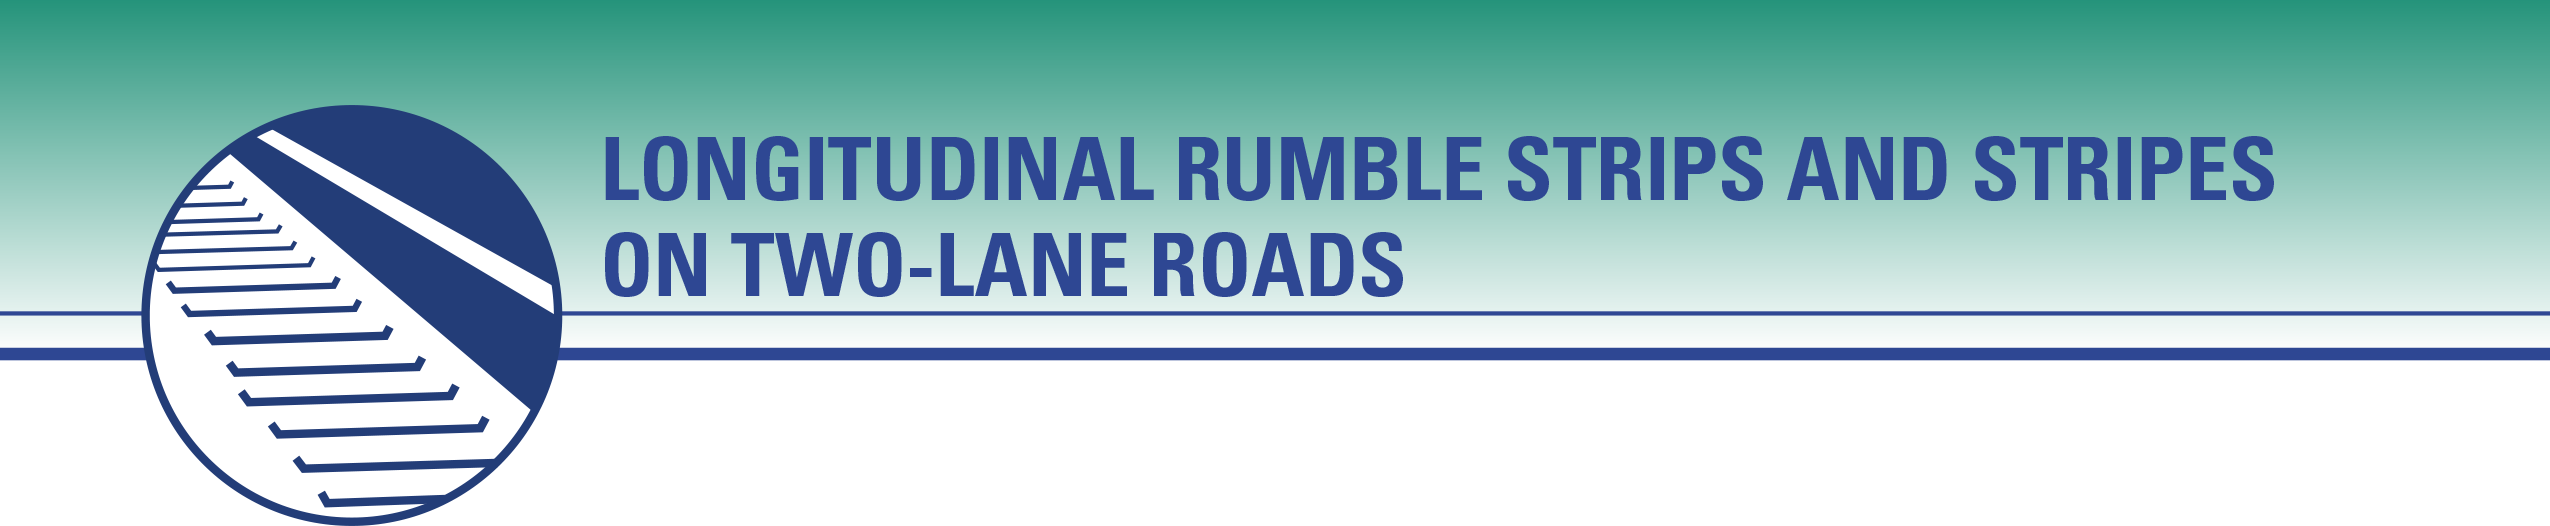 Longitudinal Rumble Strips and Stripes on Two-Lane Roads